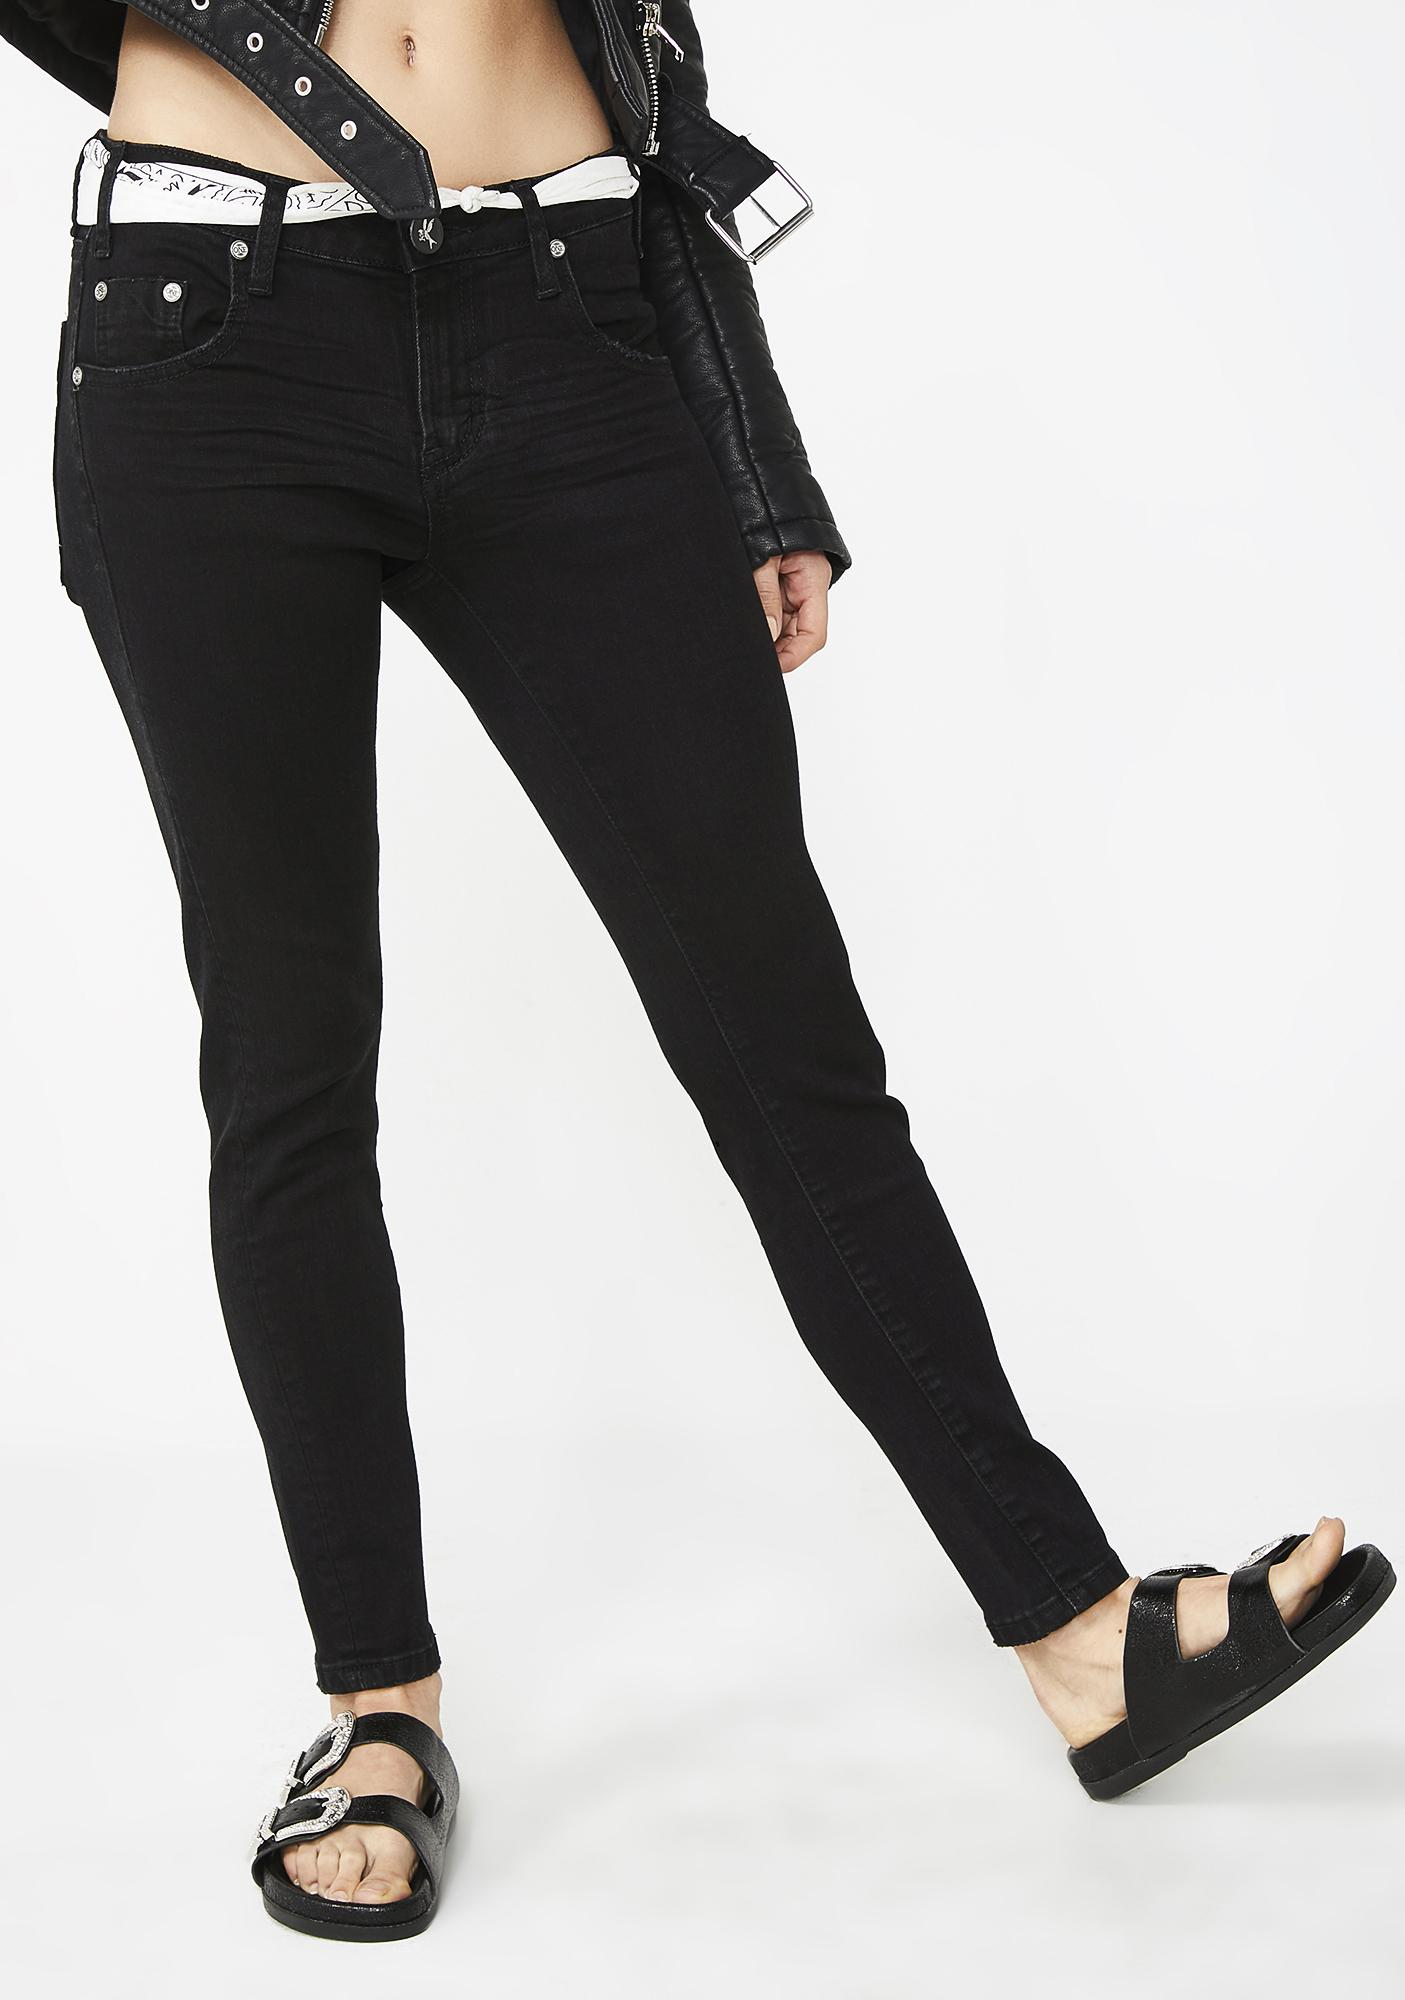 One Teaspoon Black Punk Freebirds II Low Waist Skinny Jeans